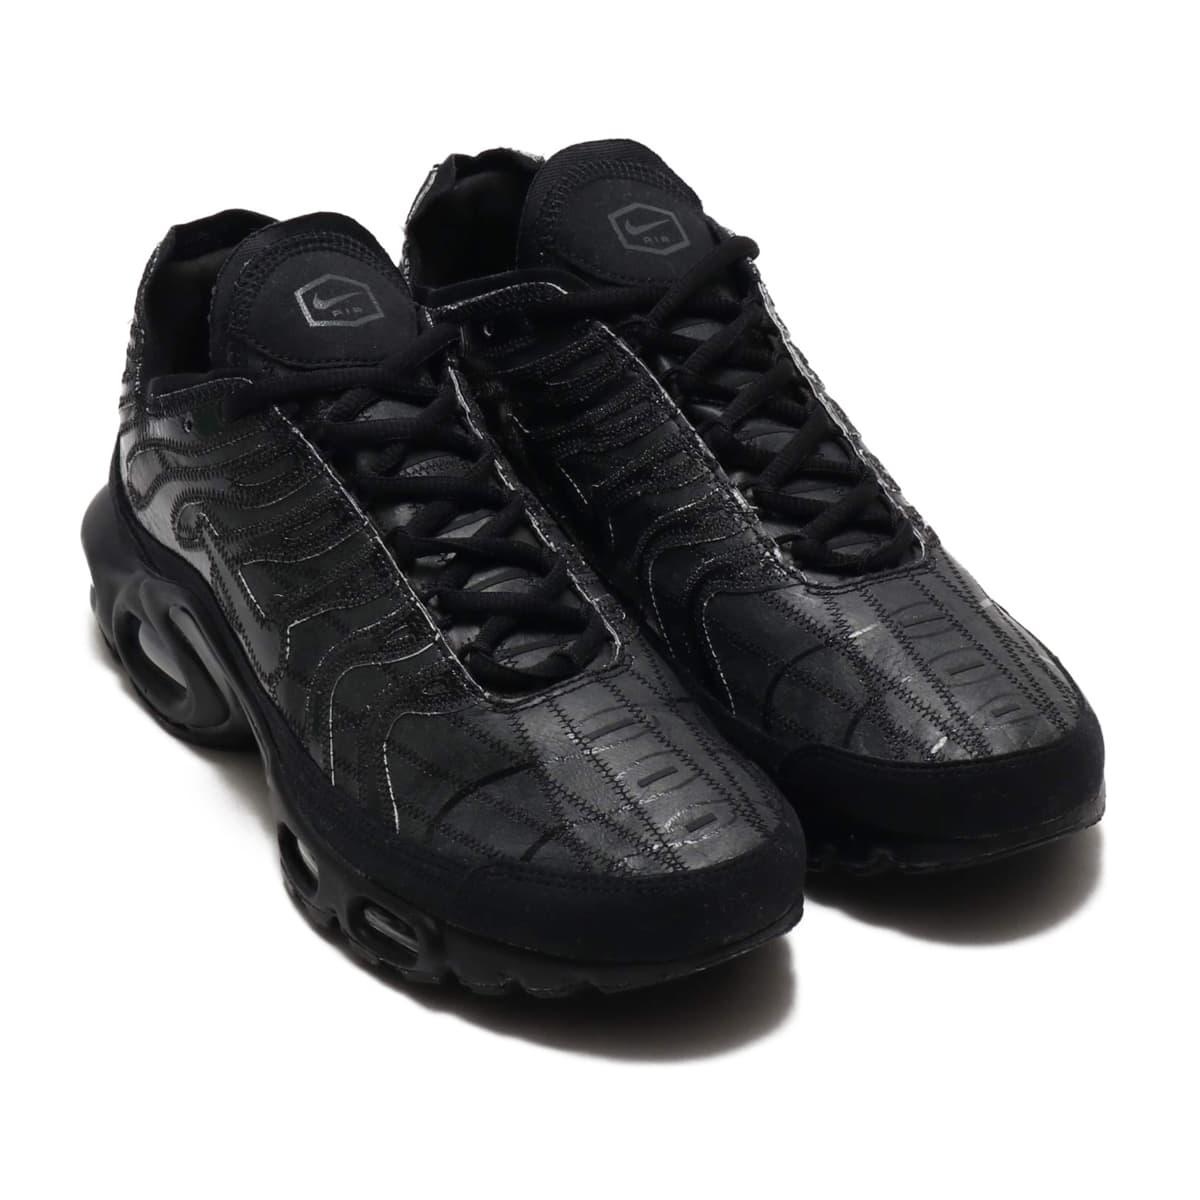 NIKE AIR MAX PLUS DECON BLACK/BLACK-ANTHRACITE 19HO-S_photo_large